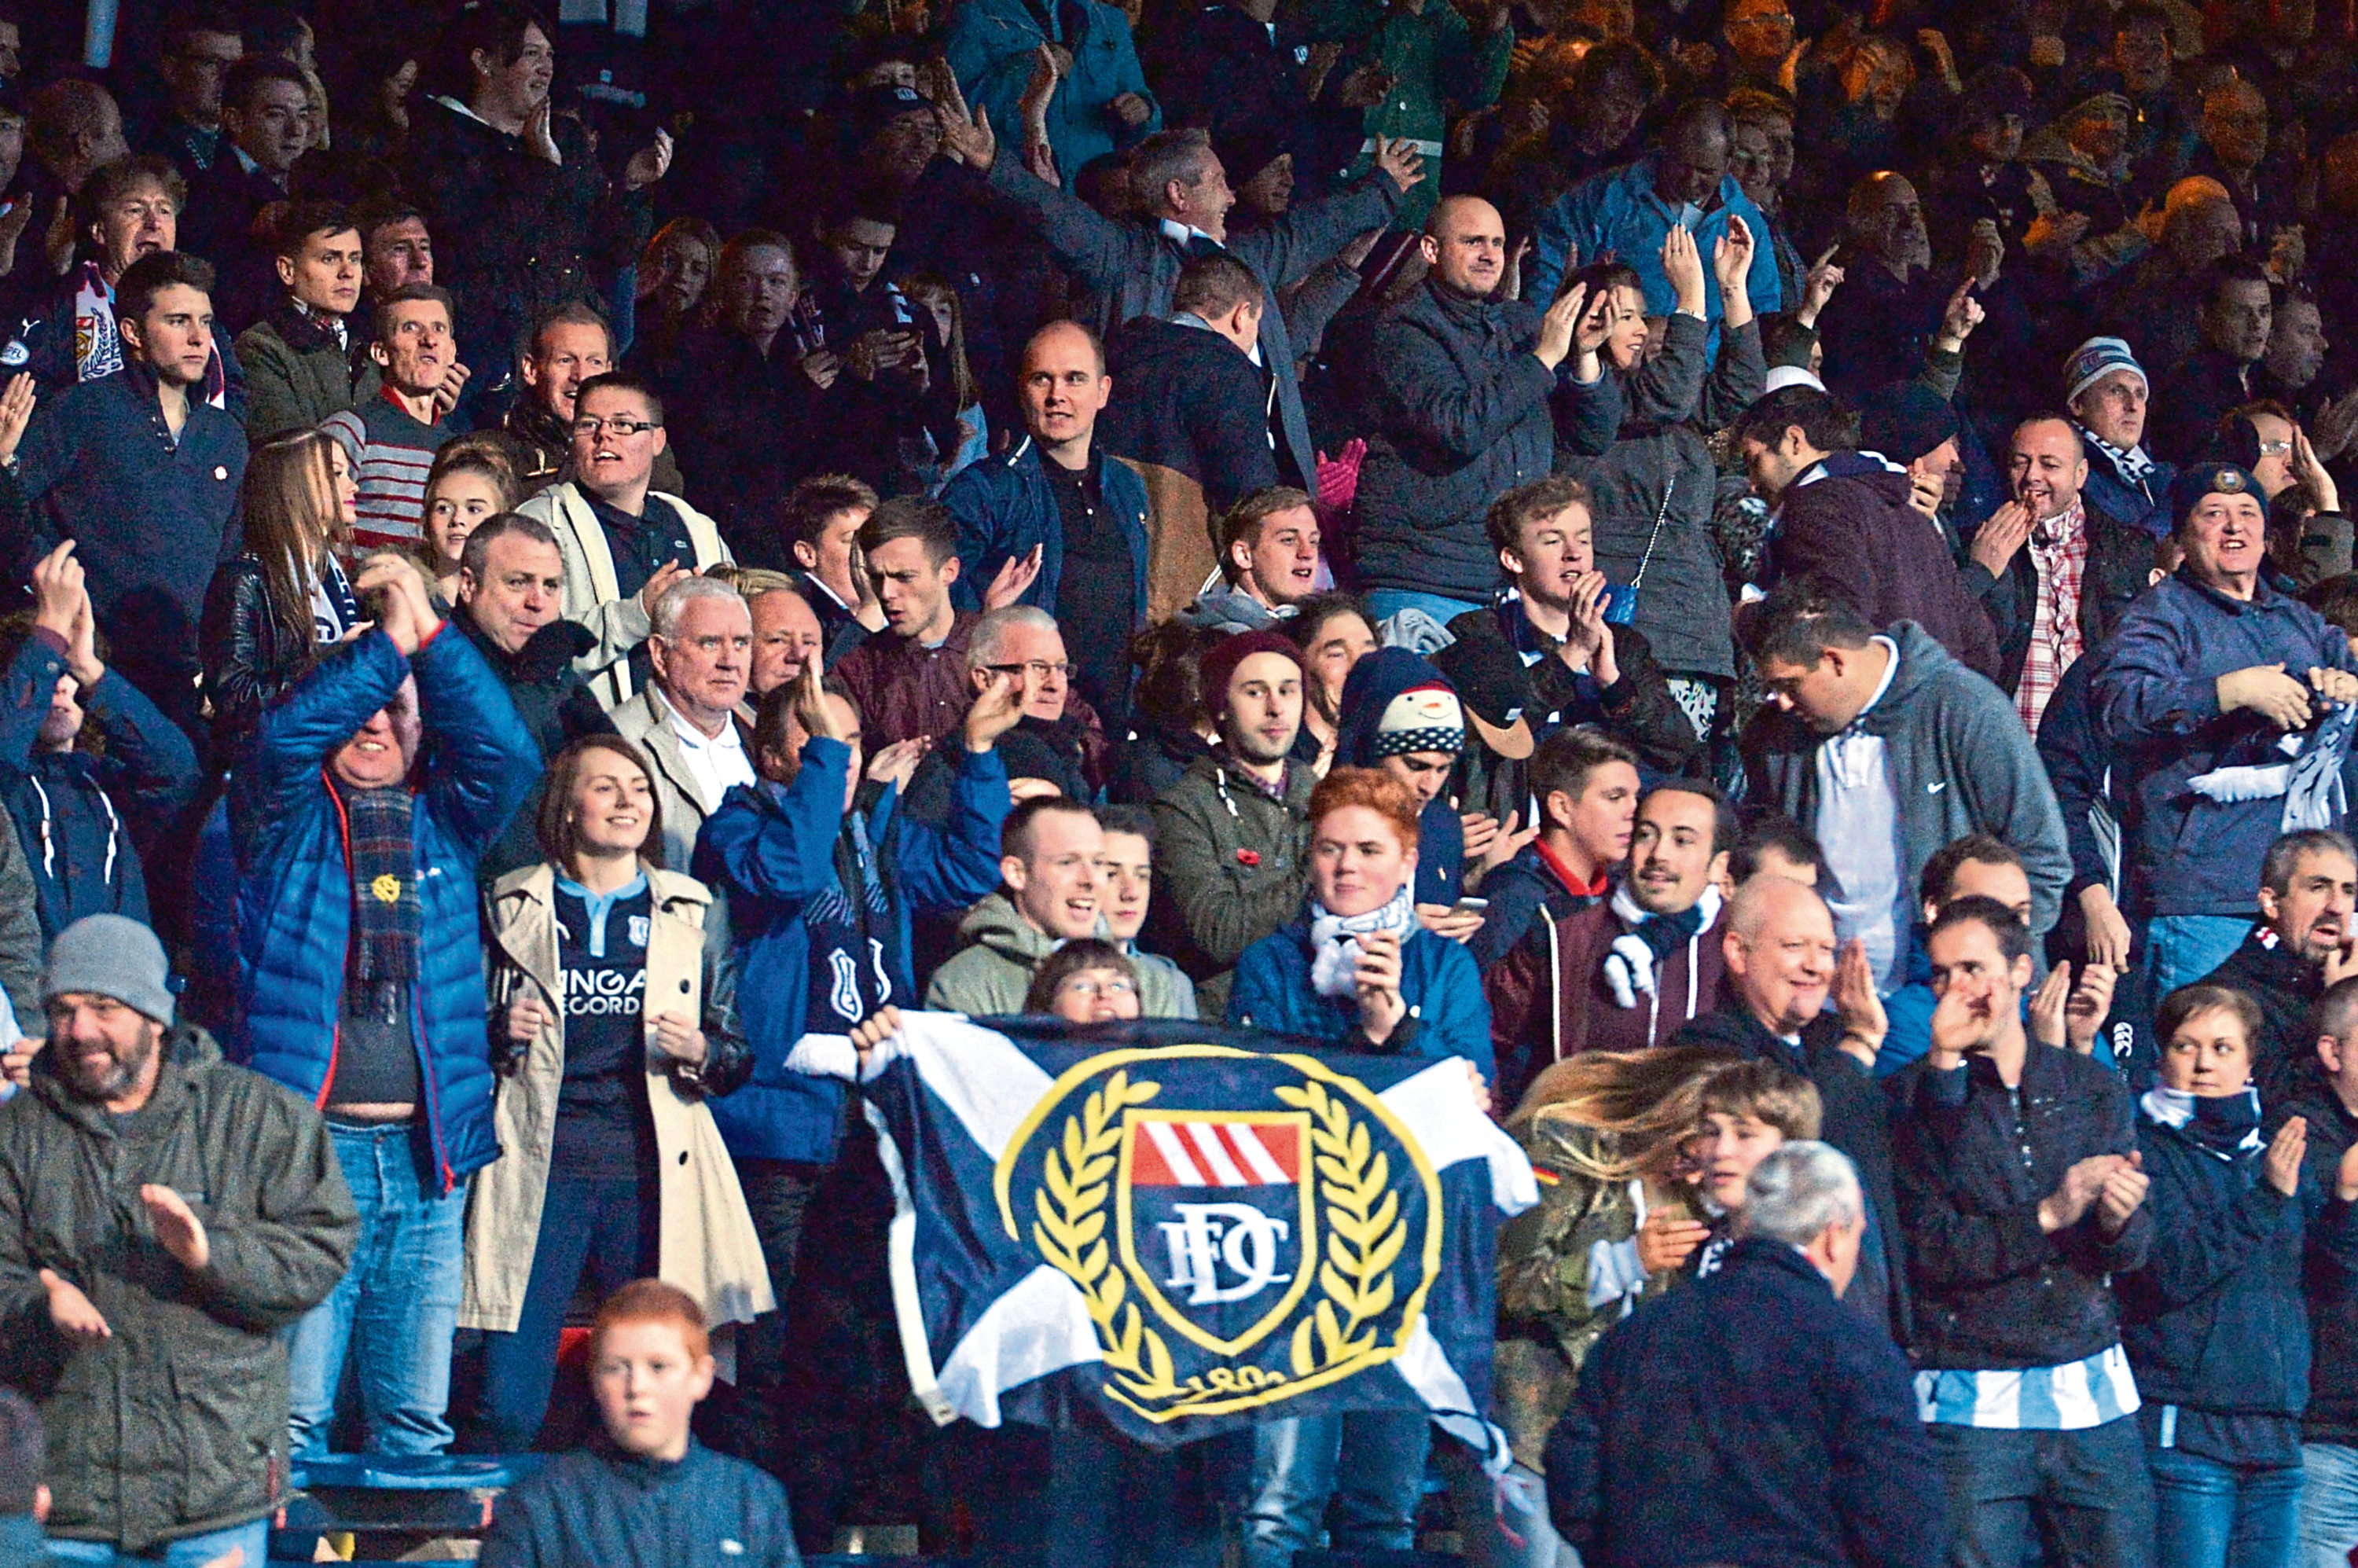 Dundee fans at Dens Park.